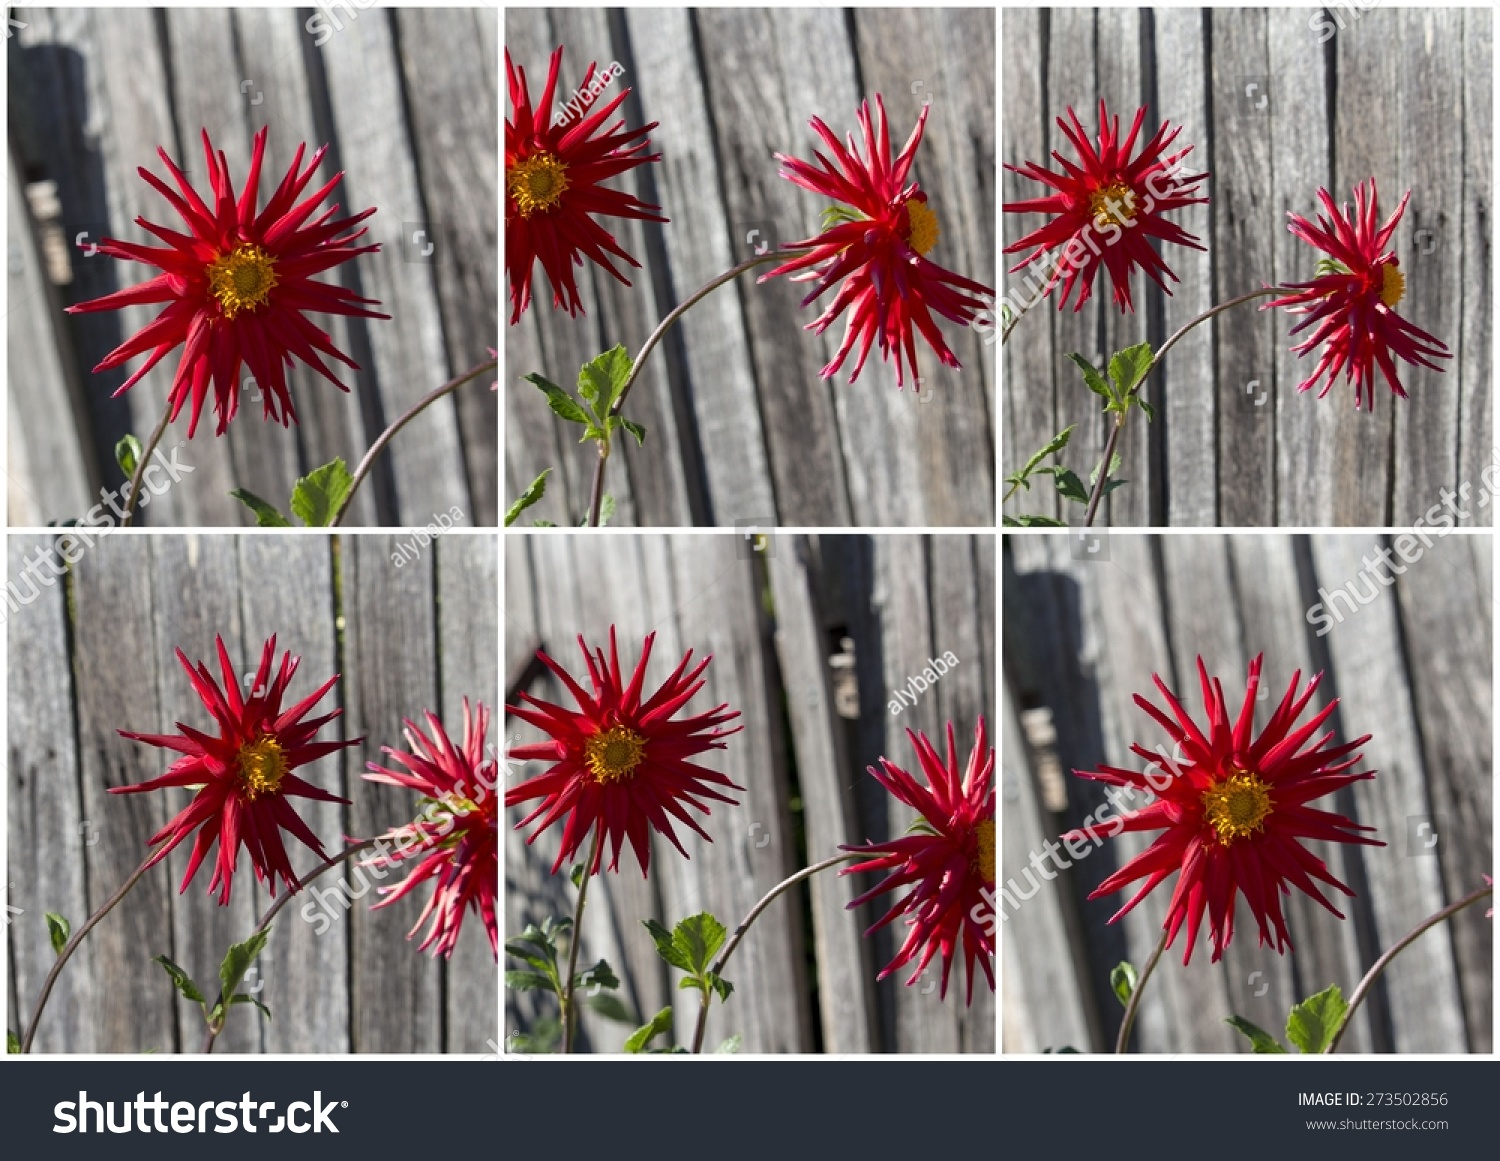 Collage bright red spider dahlia flowers stock photo royalty free collage of bright red spider dahlia flowers growing against a wooden fence a genus of izmirmasajfo